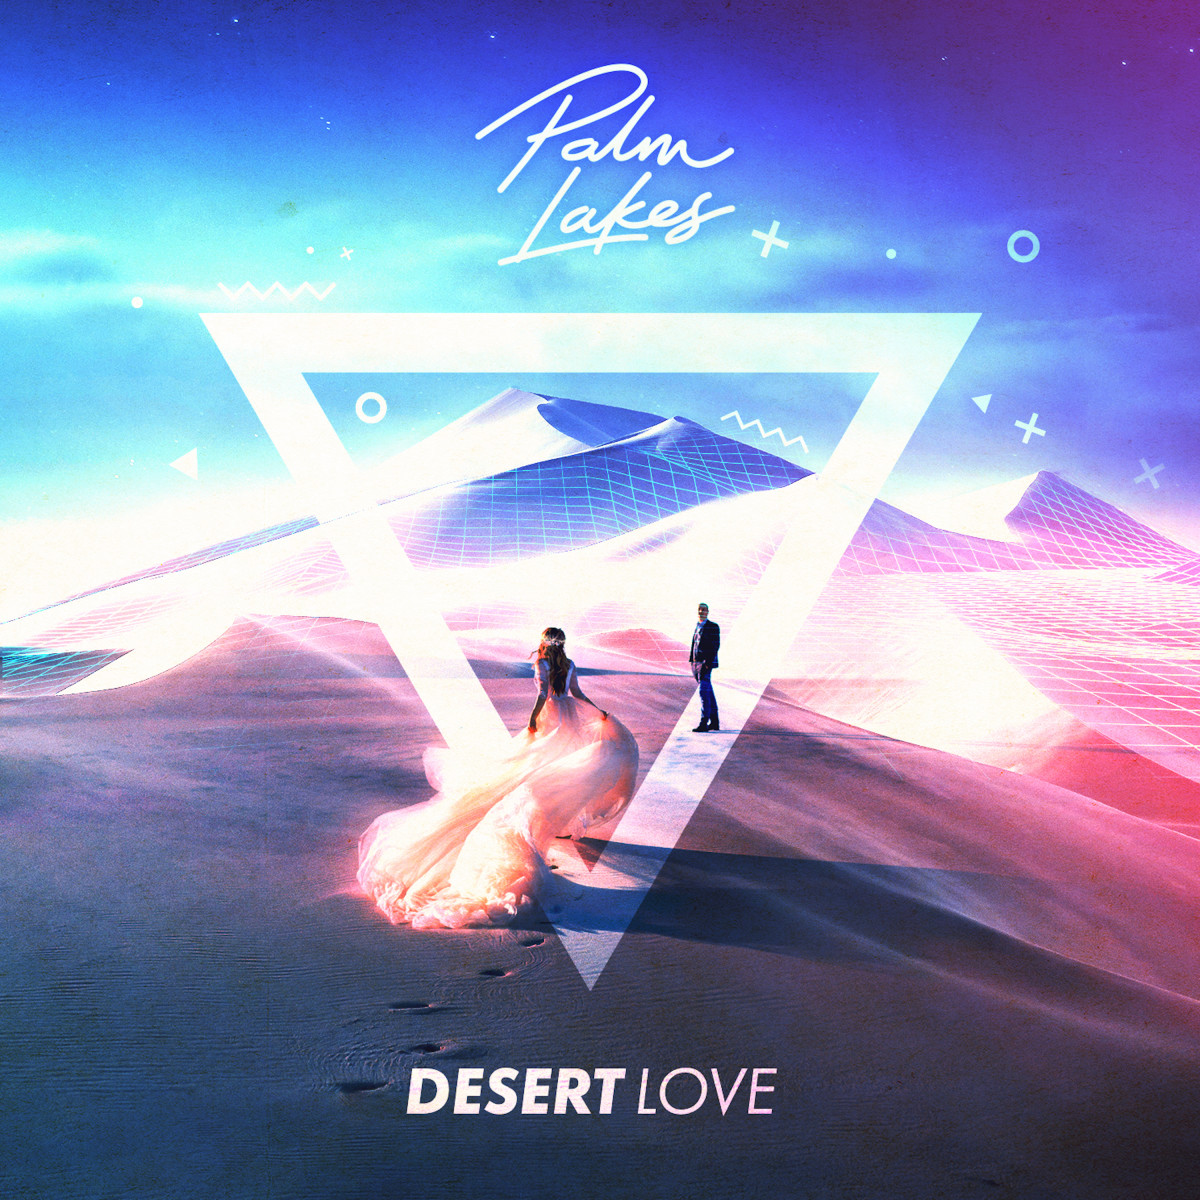 synth-single-review-desert-love-by-palm-lakes